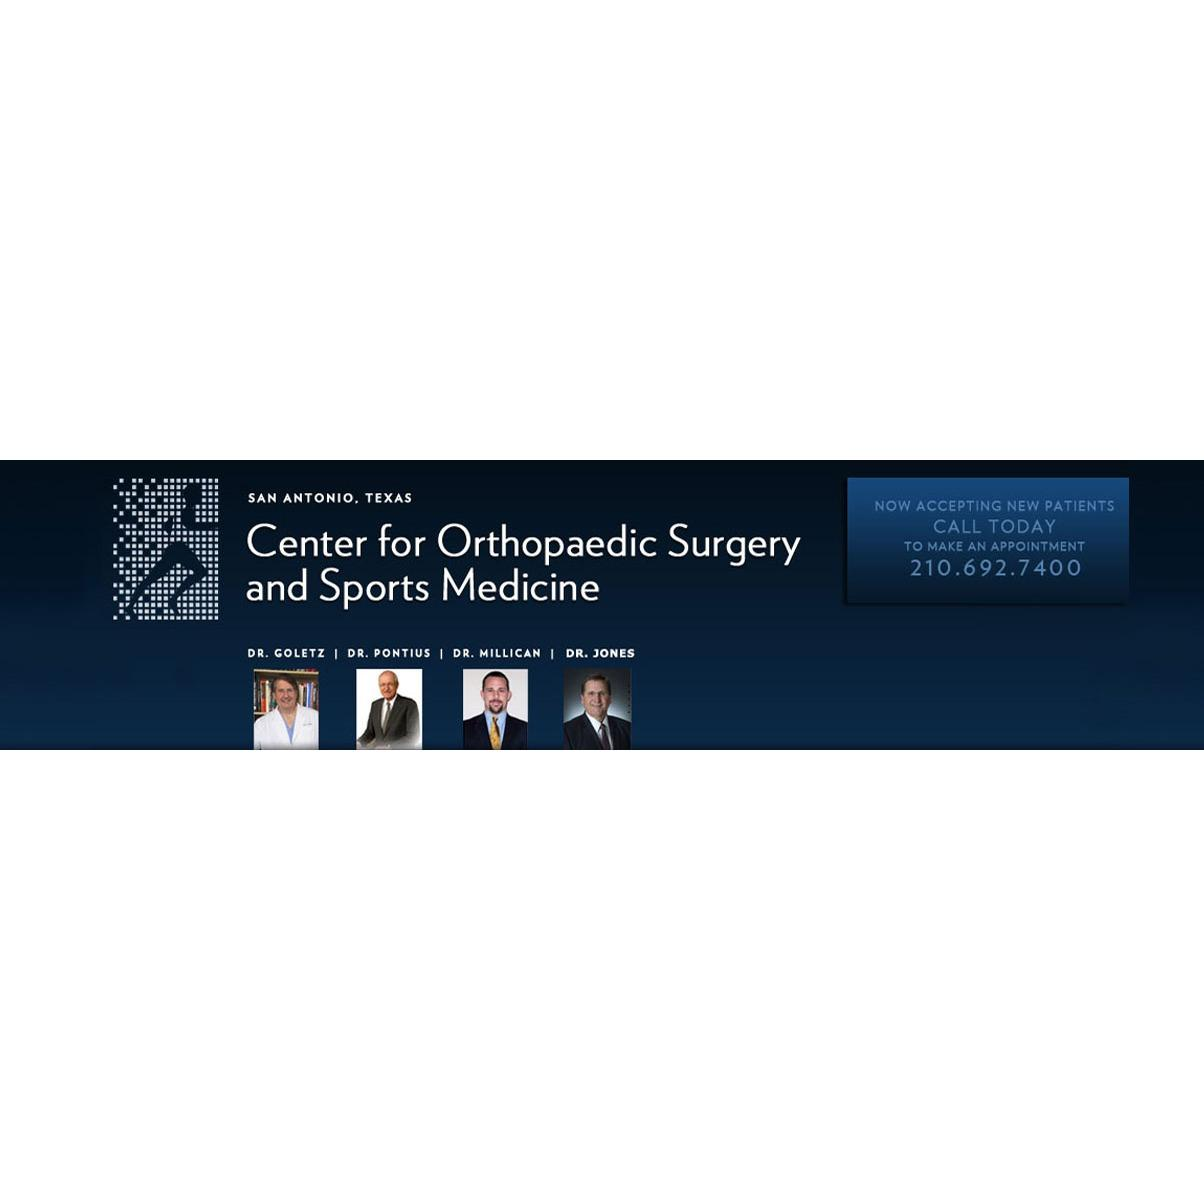 Center for Orthopaedic Surgery & Sports Medicine